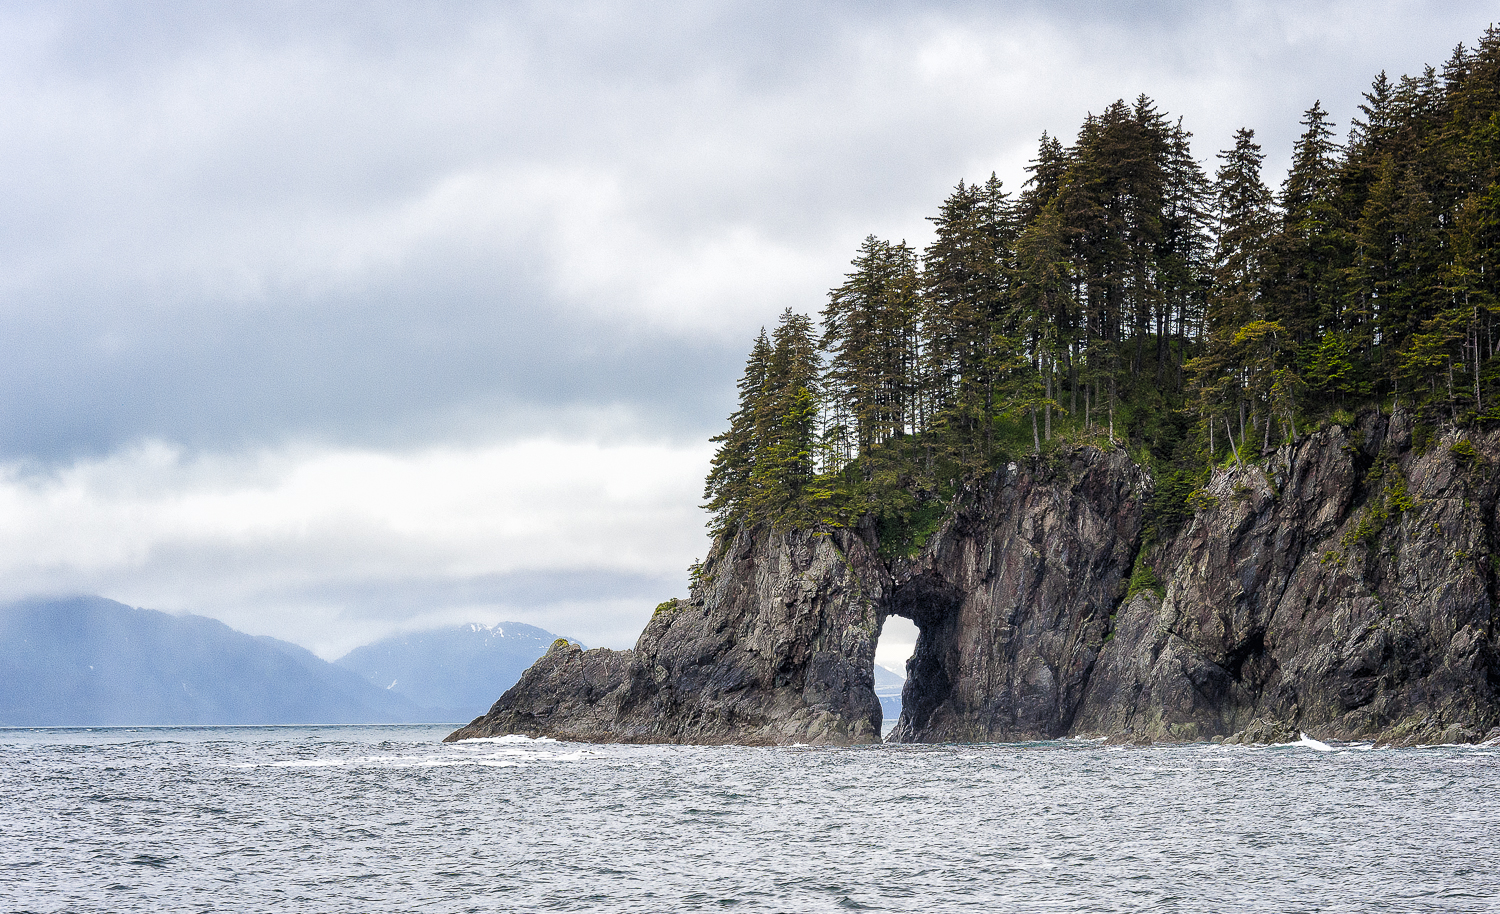 Sea Caves populate the west coast as a tribute to the power of seawater erosion.